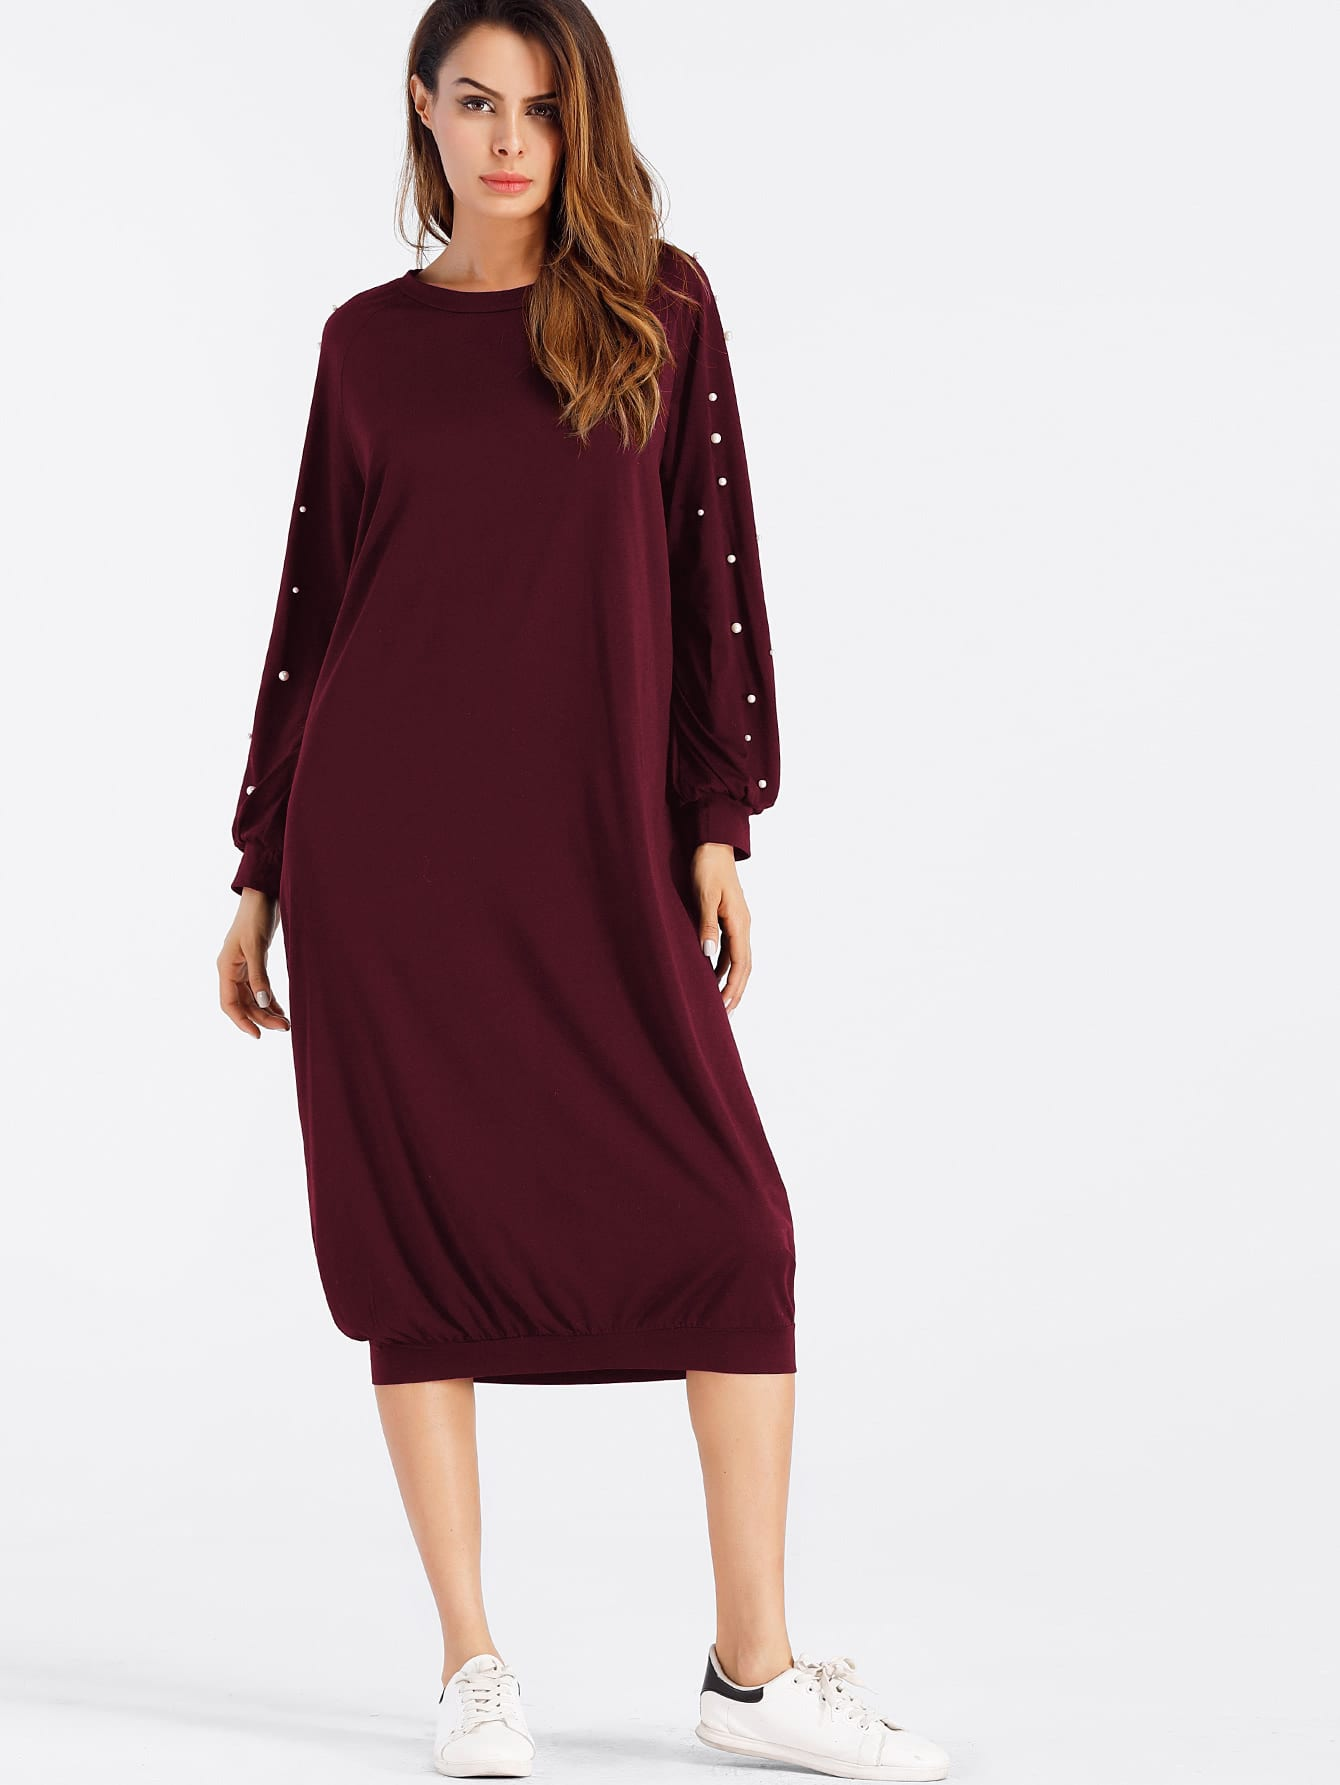 Pearl Beaded Sweatshirt Dress frill layered pearl detail sweatshirt dress